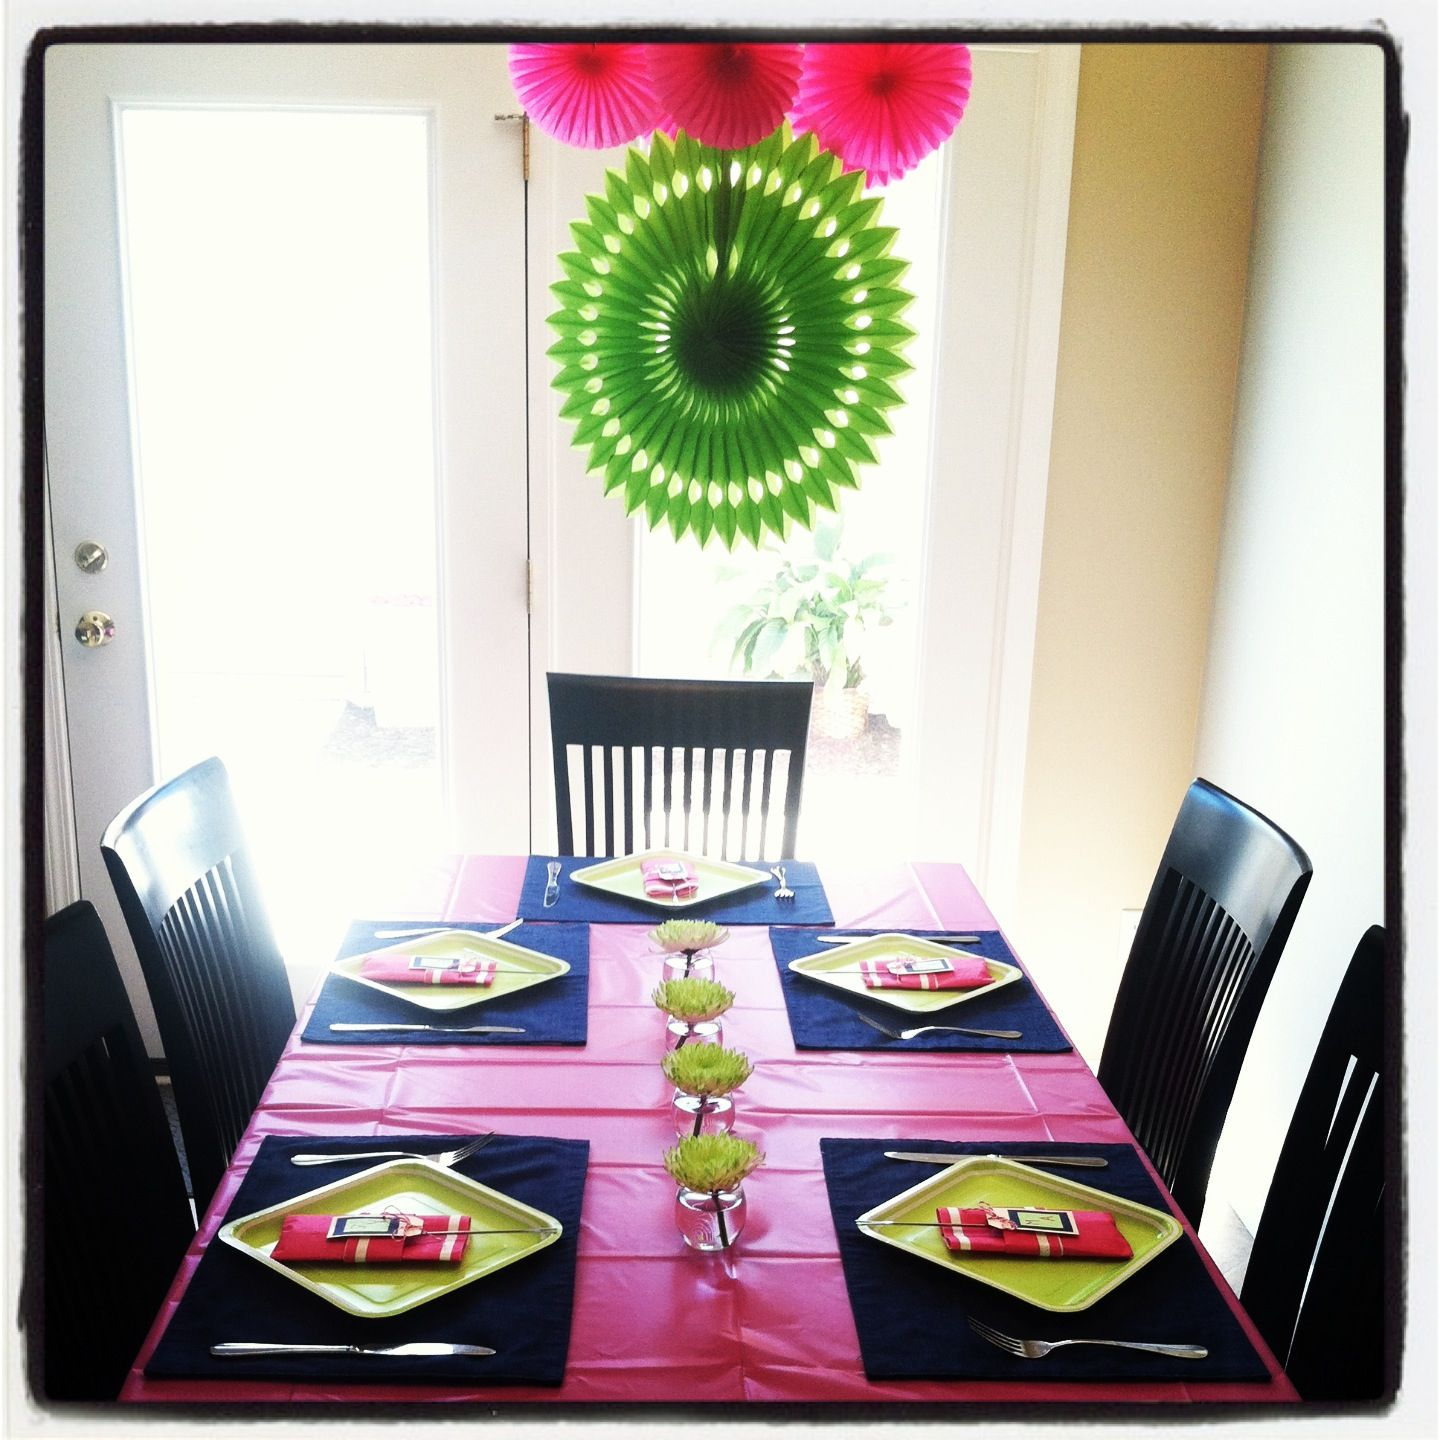 Wedding Bridal Shower. A Fondue Dinner Party With Hot Pink